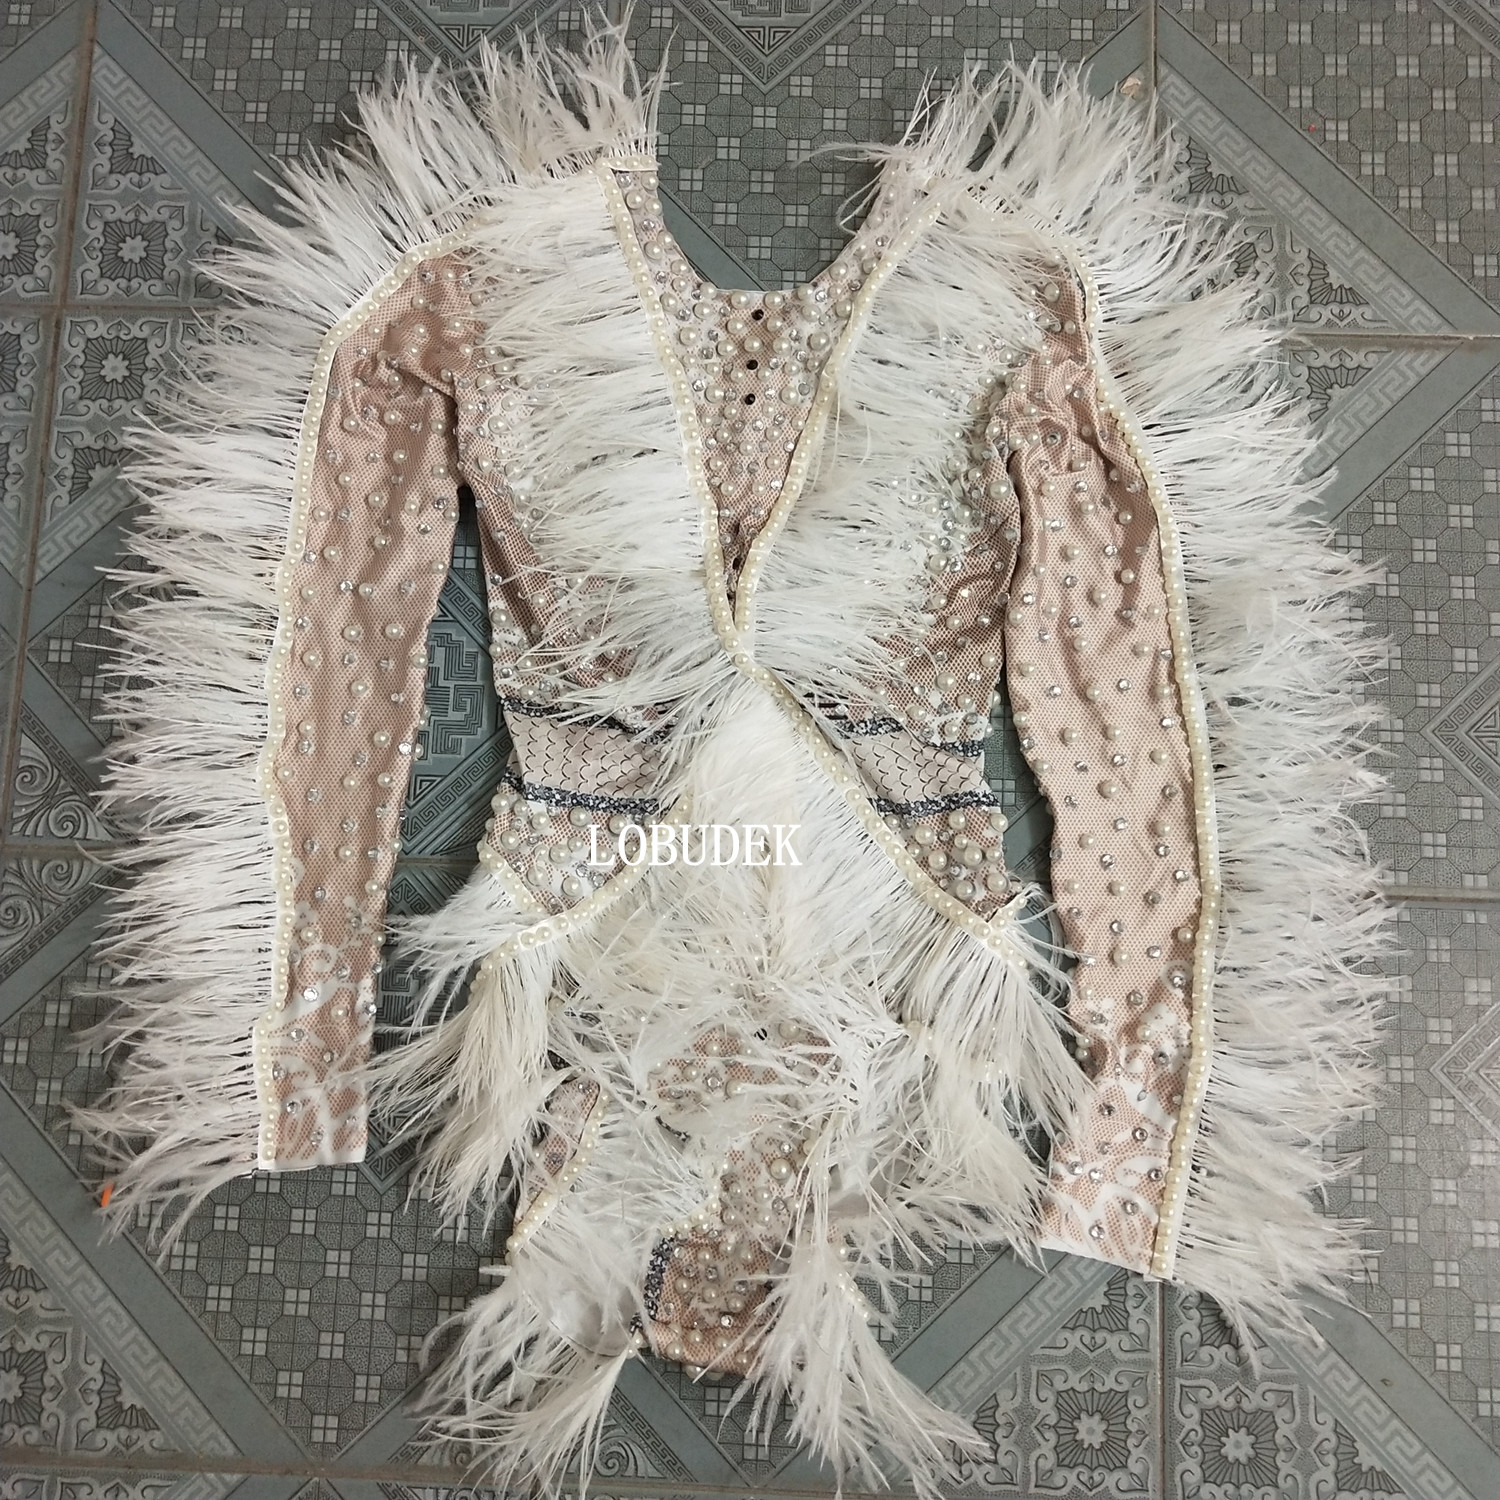 Nightclub Lady Singer Costume White Feathers Pearls Bodysuit Sparkly Crystals Tights Stage Wear Dancer Jazz Performance Costume